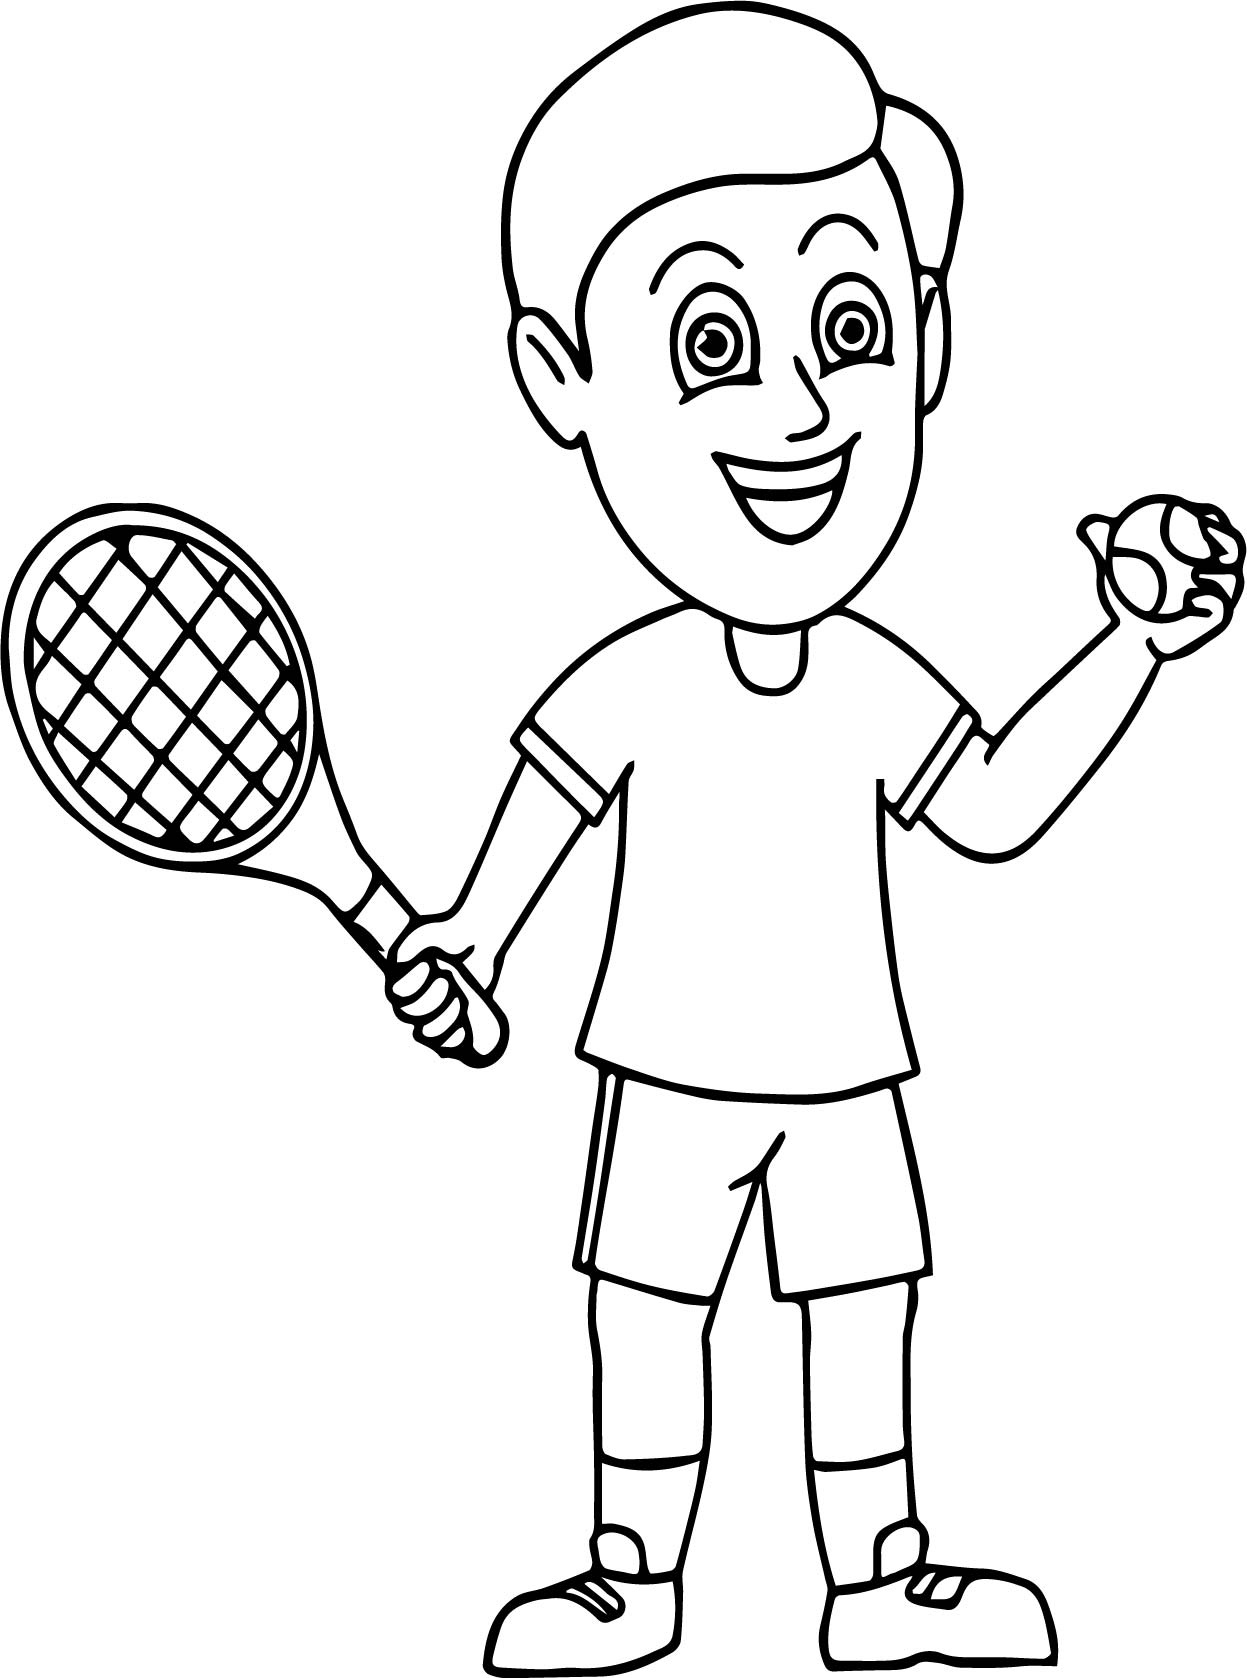 Boy Ready To Serve Tennis Coloring Page